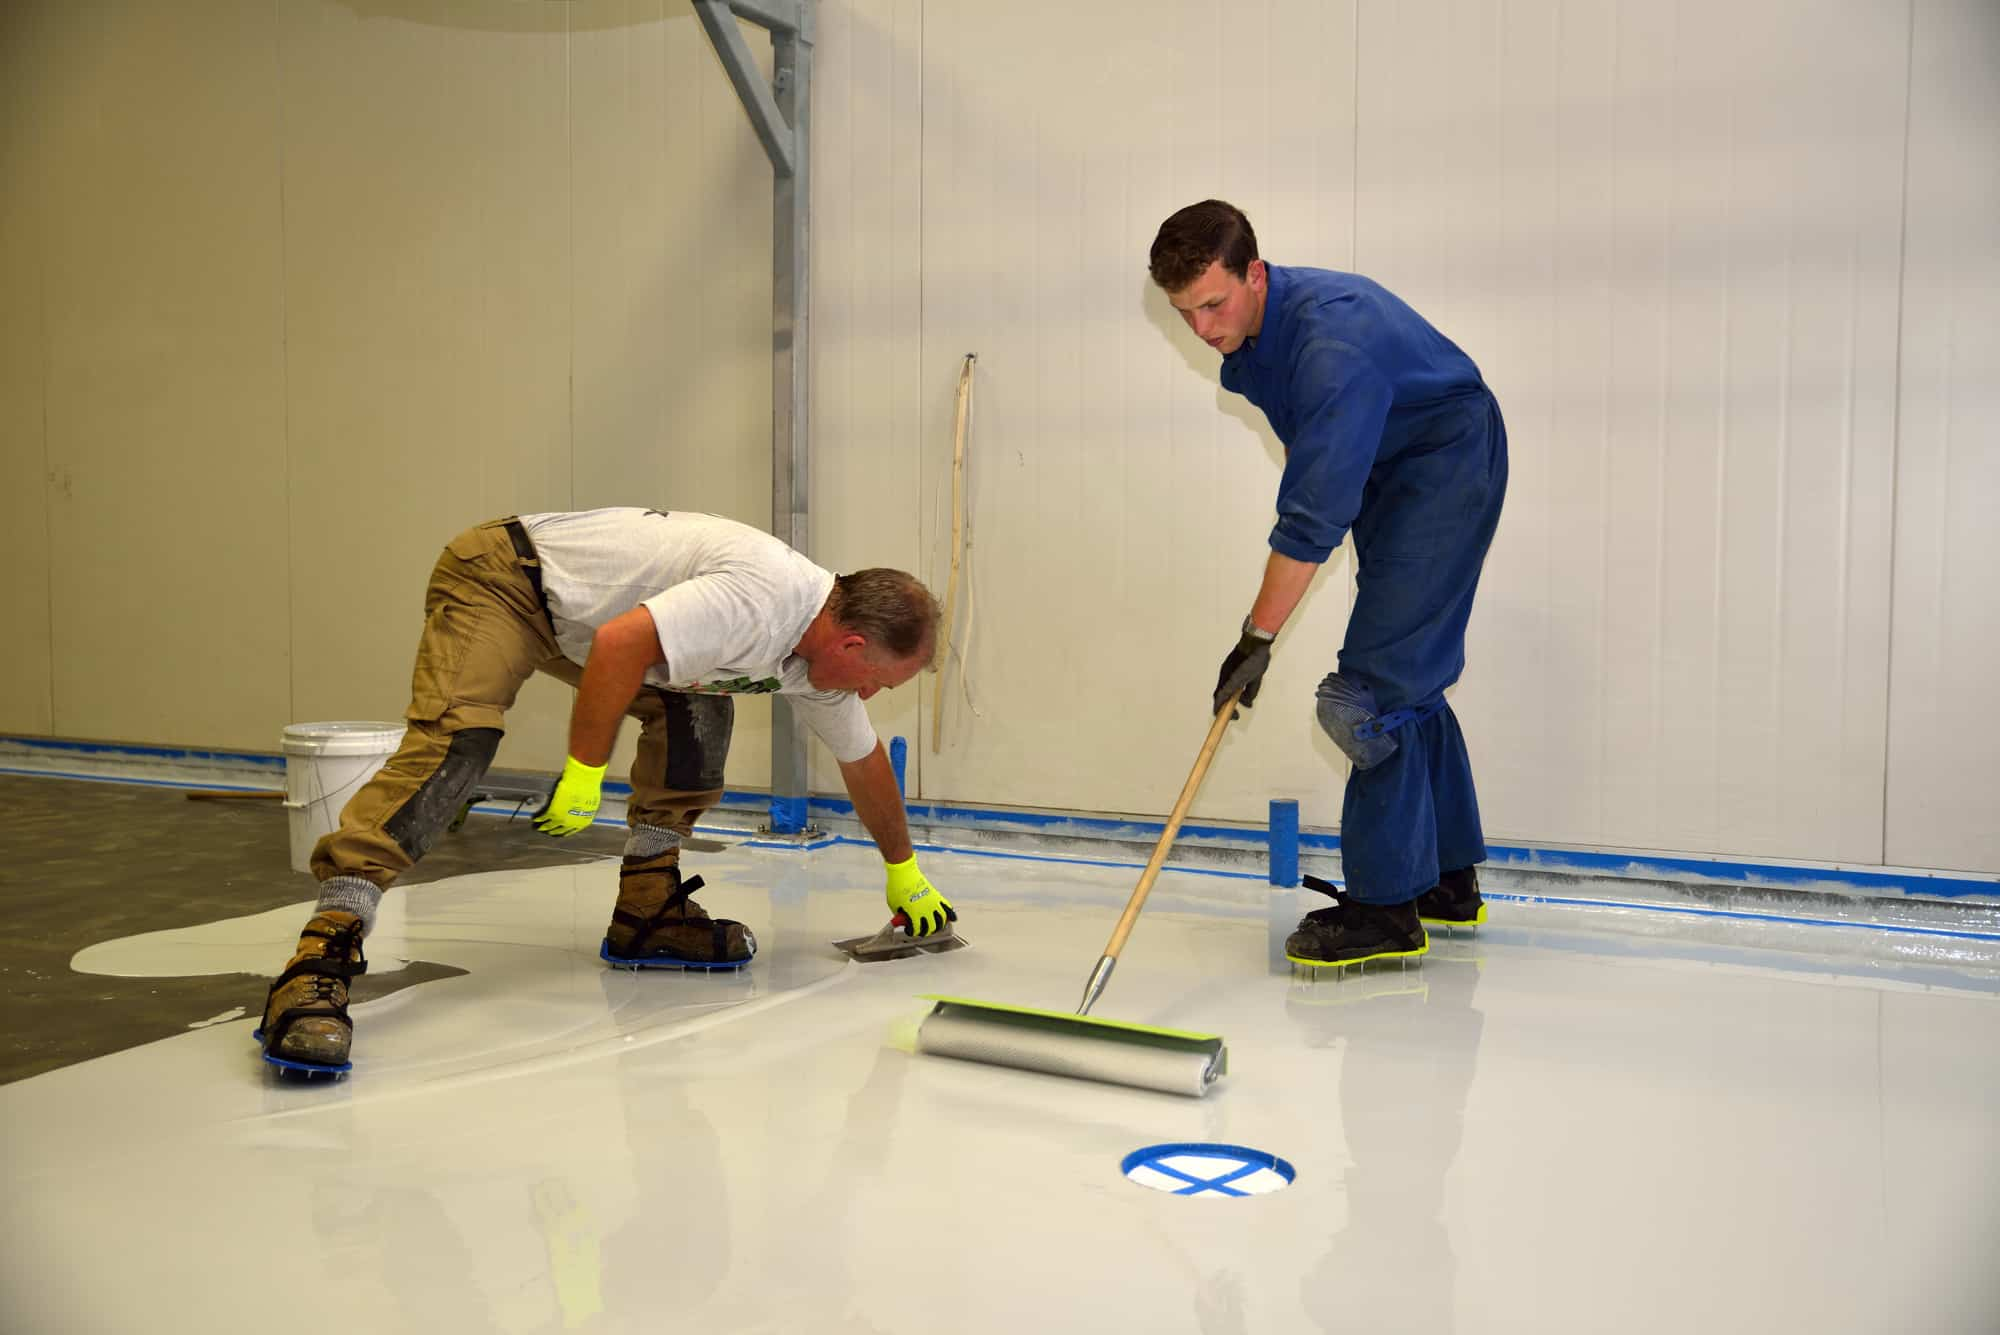 2 workmen applying a white epoxy to an industrial floor